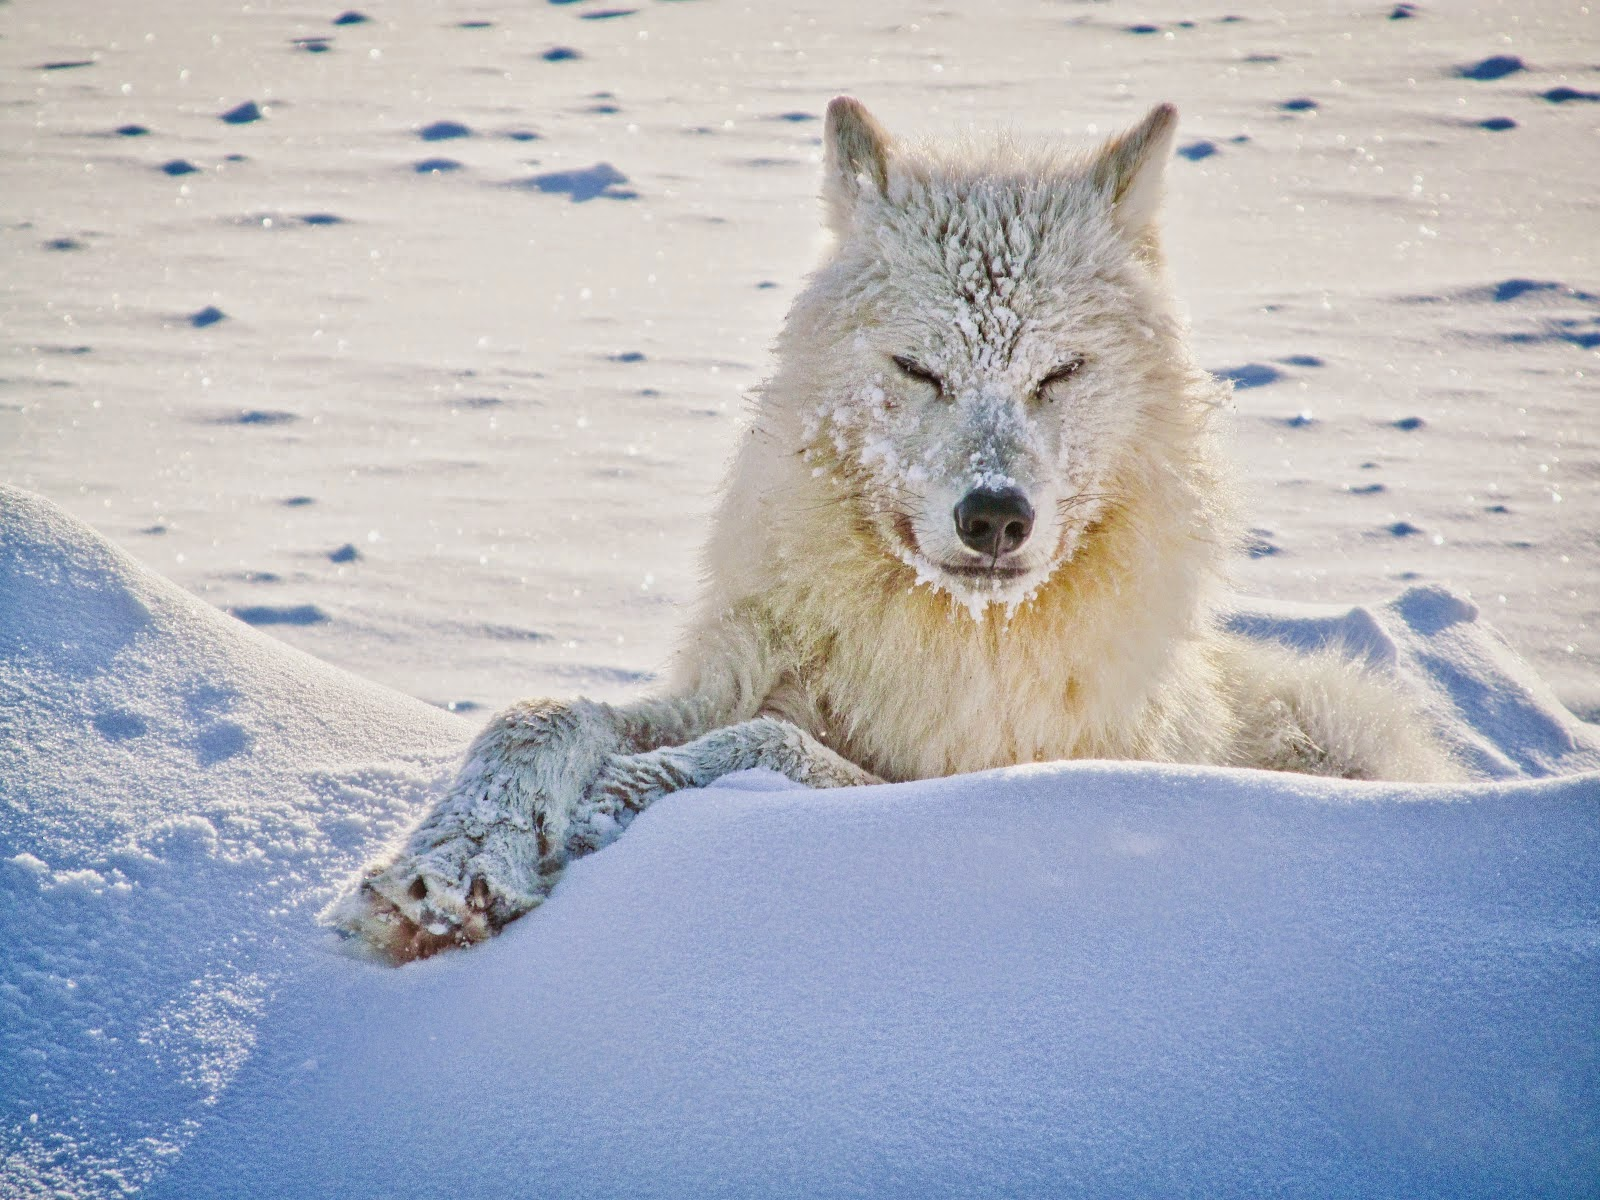 White Wolf 15 Photos Of The Most Amazing Animal In